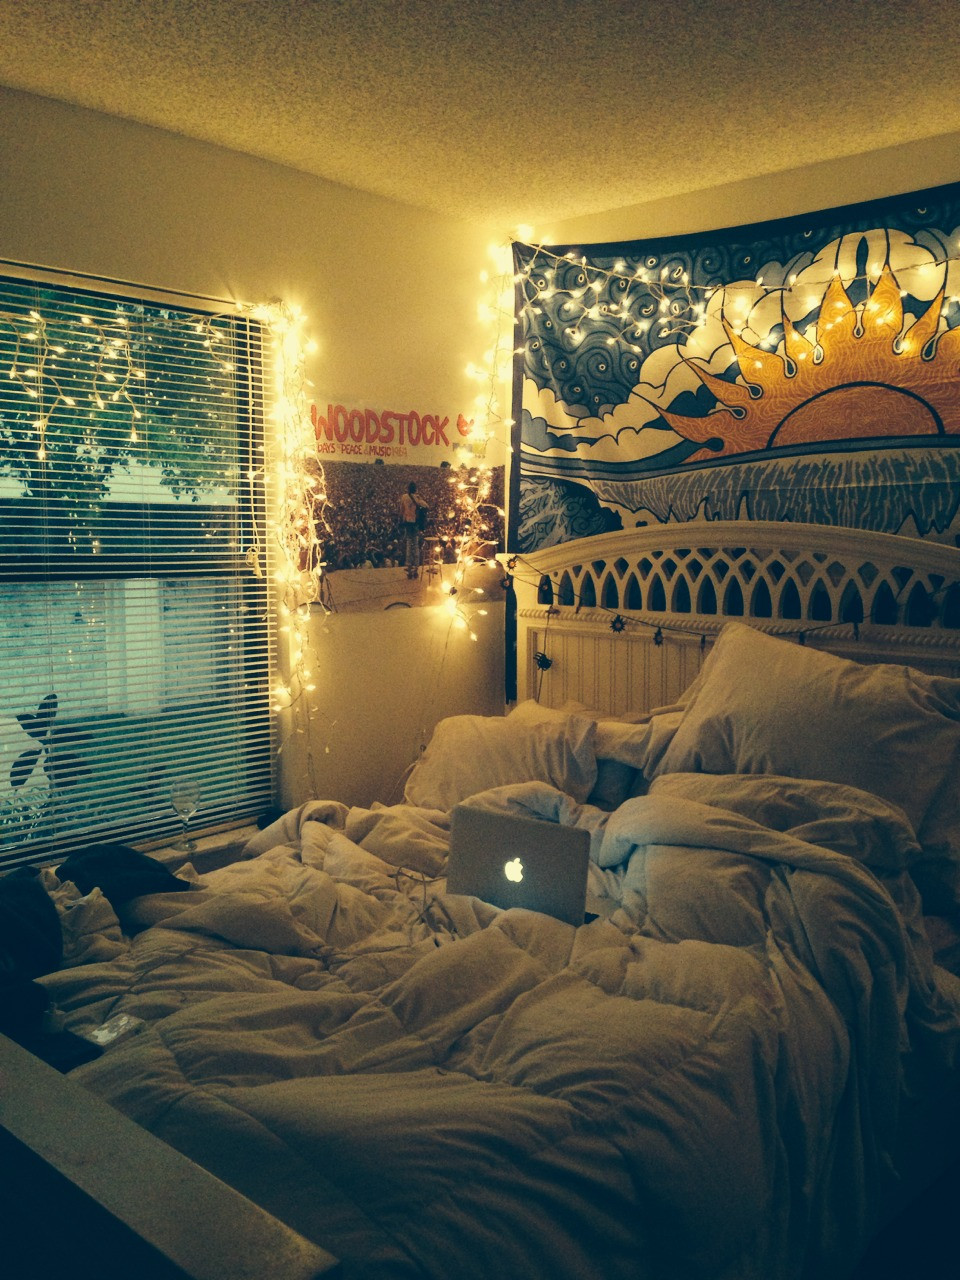 Best ideas about Bedroom Ideas Tumblr . Save or Pin Built Tumblr Bedroom with Your Own Taste Now.